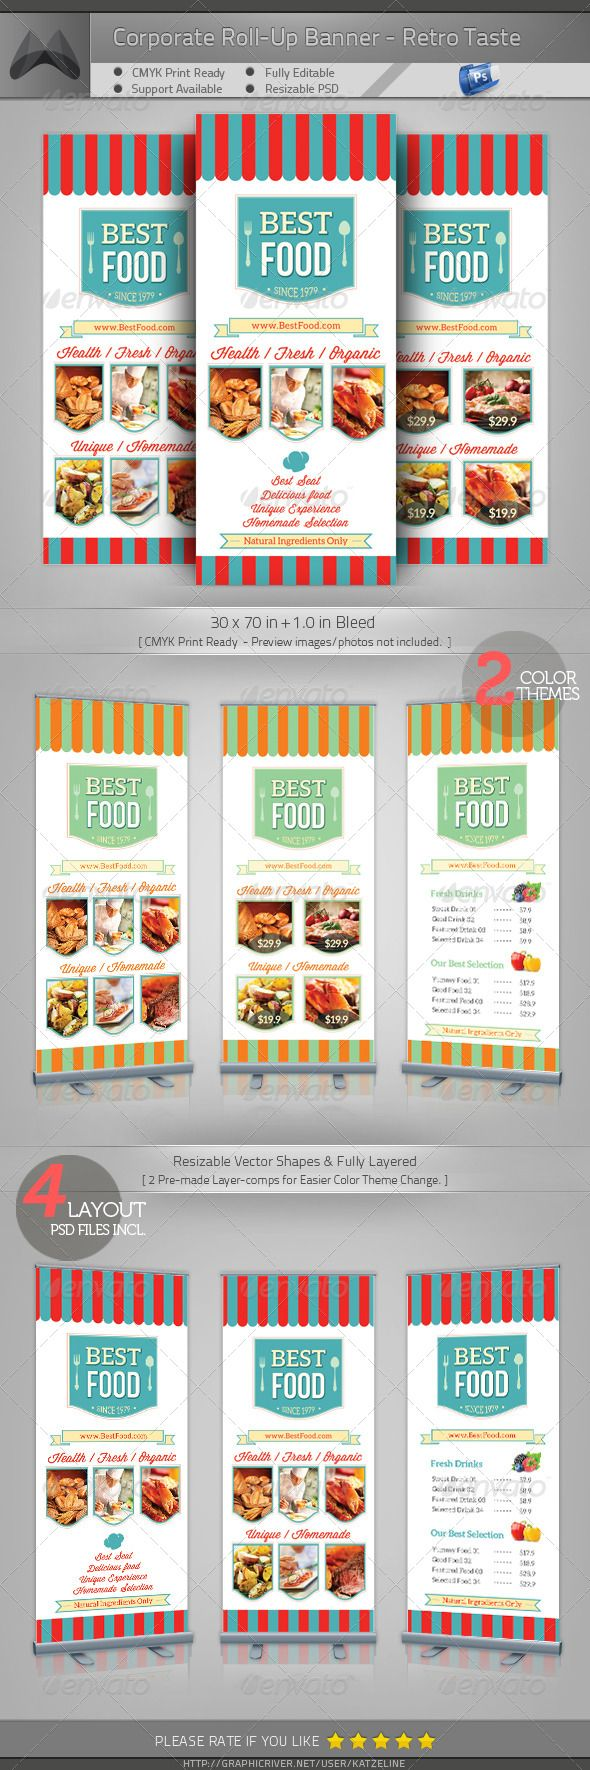 Retro Taste Food/Restaurant Roll-up Banner #GraphicRiver [ Corporate Roll-up Banner – Retro Taste Food/Restaurant] 30×70 in +1.0in Bleed, CMYK Print Ready. Fully-Layered Photoshop PSD CS4 or higher – 100DPI (increasable / resizable) Easy to customize and Change Color. 4 Layouts & 2 Color theme pre-mad One-click Color Theme Change on 'Layer Comp' panel. Multipurpose Corporate Roll-up Template. Excellent for your multipurpose corporate usage. Font used: Aleo,Winsdom Script,Bebas Neue Exclusive…